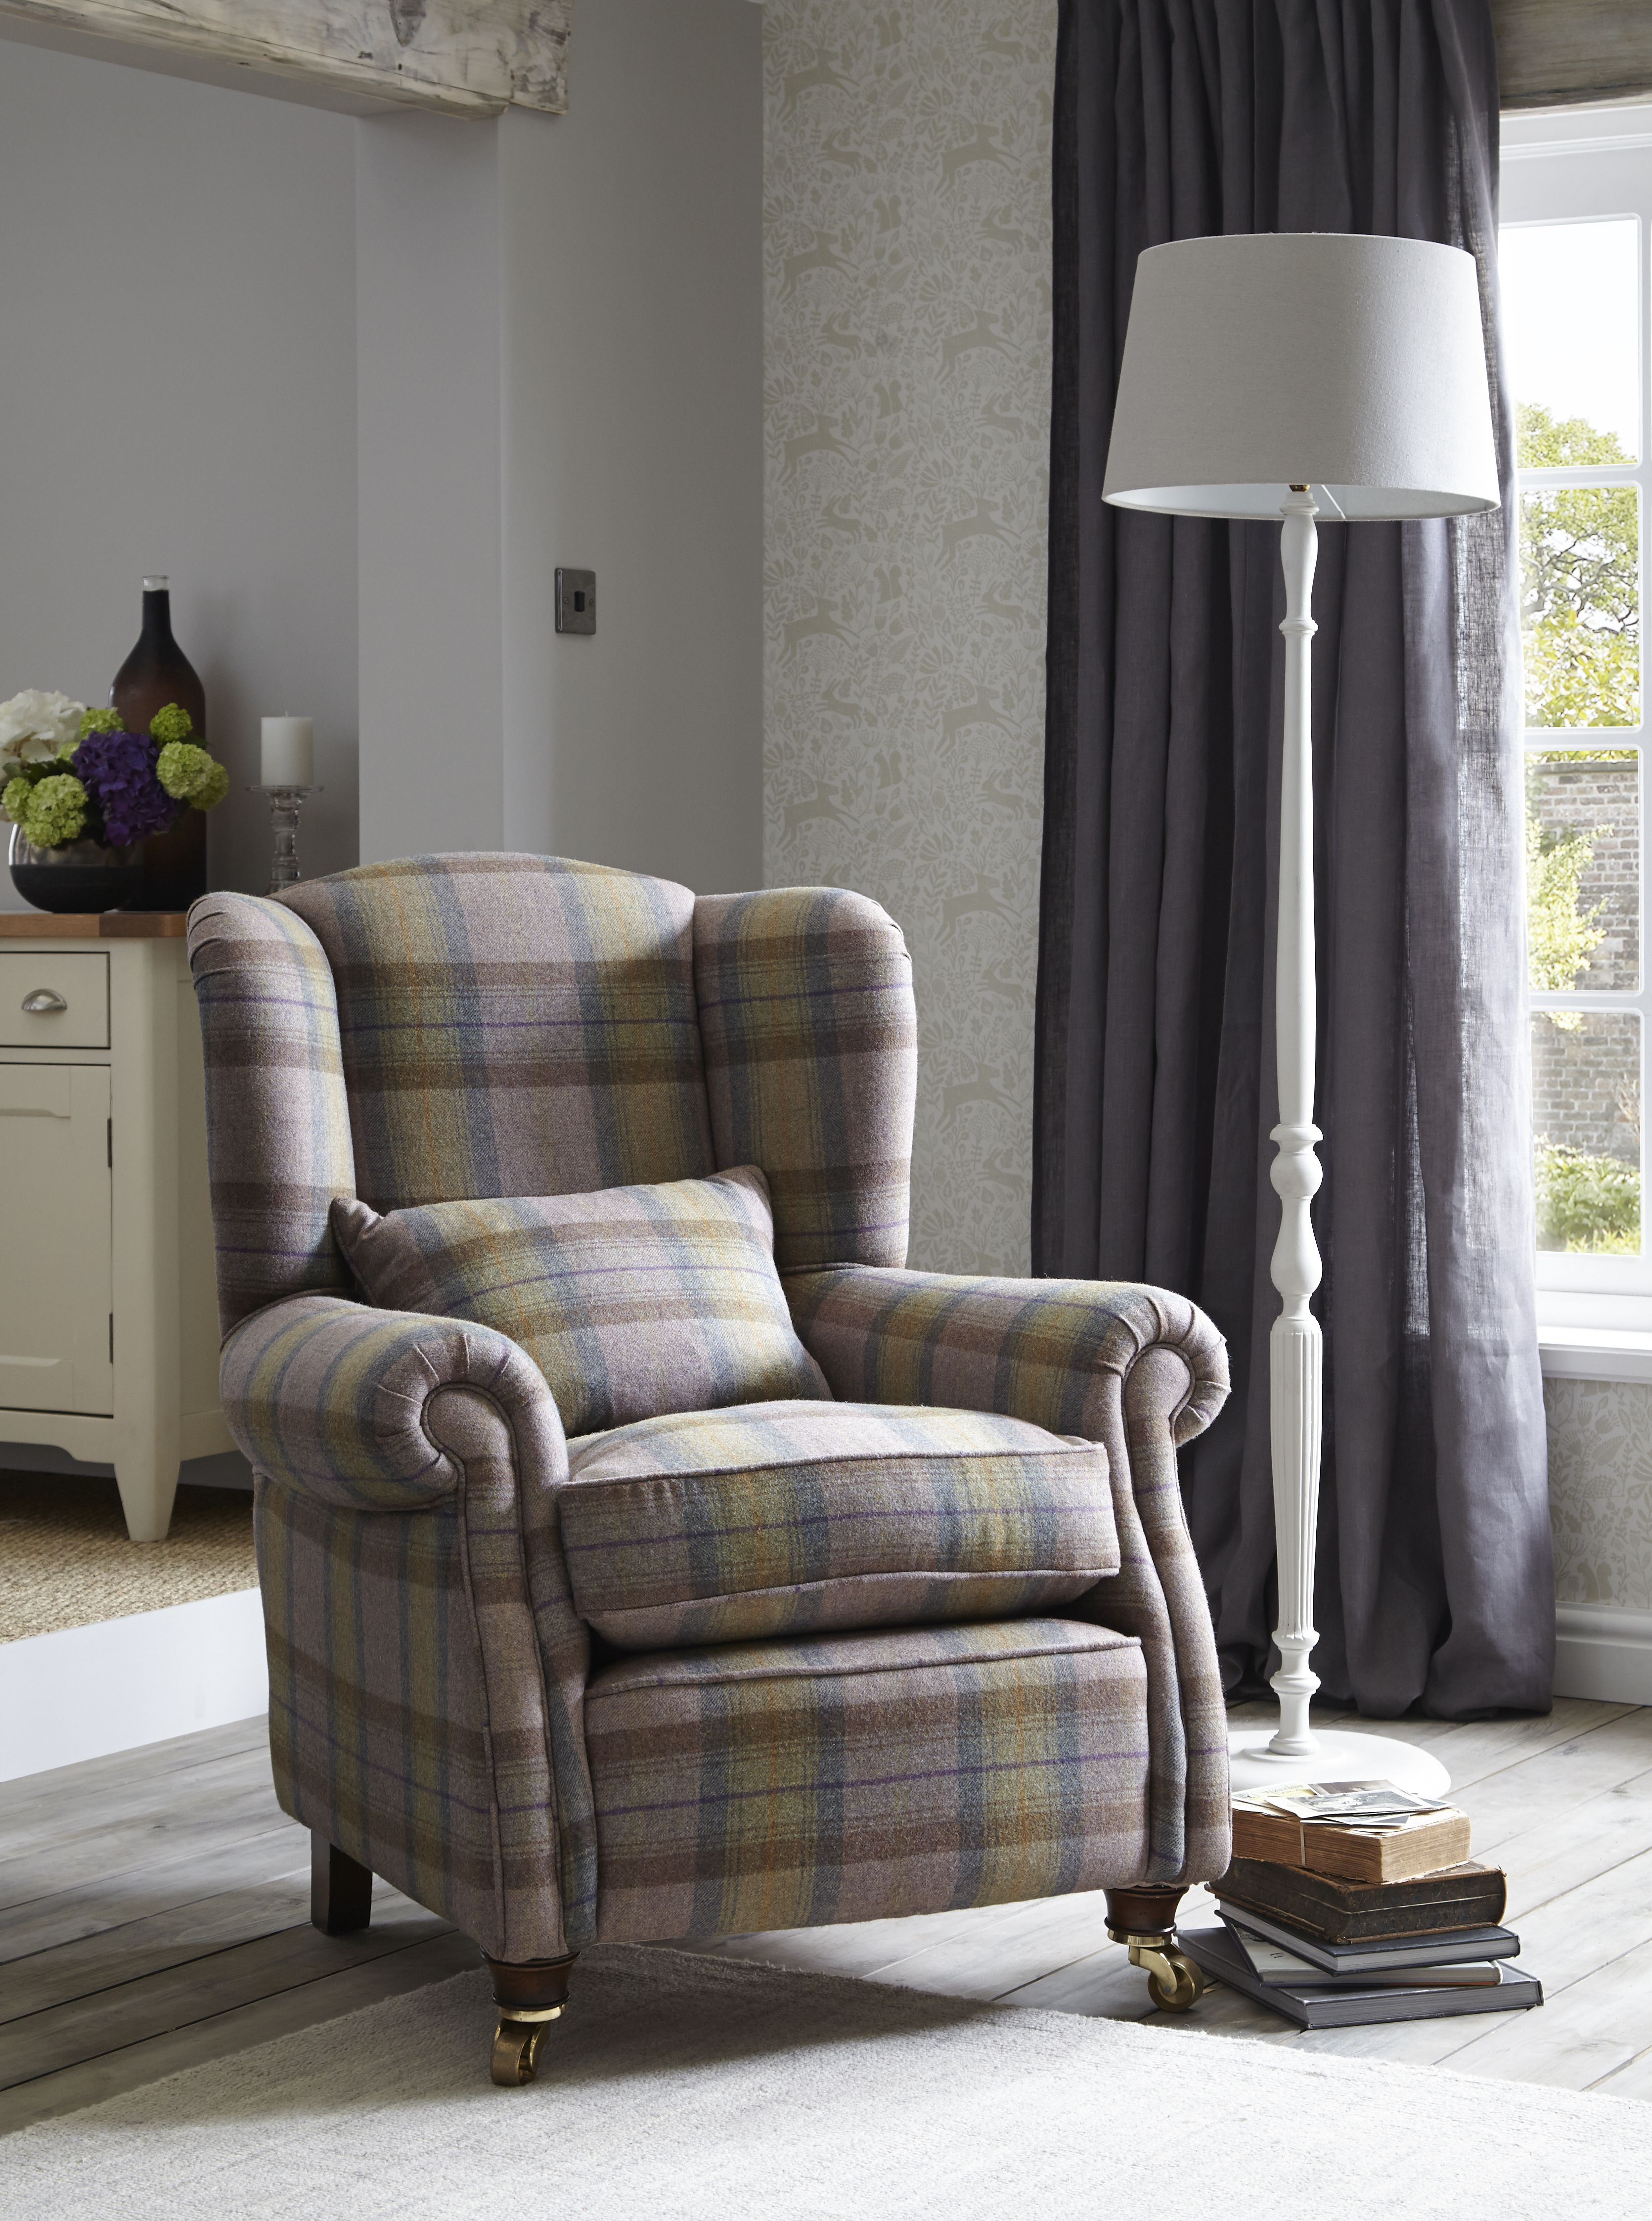 loch leven wing back chair i dfs i http www dfs co uk loch